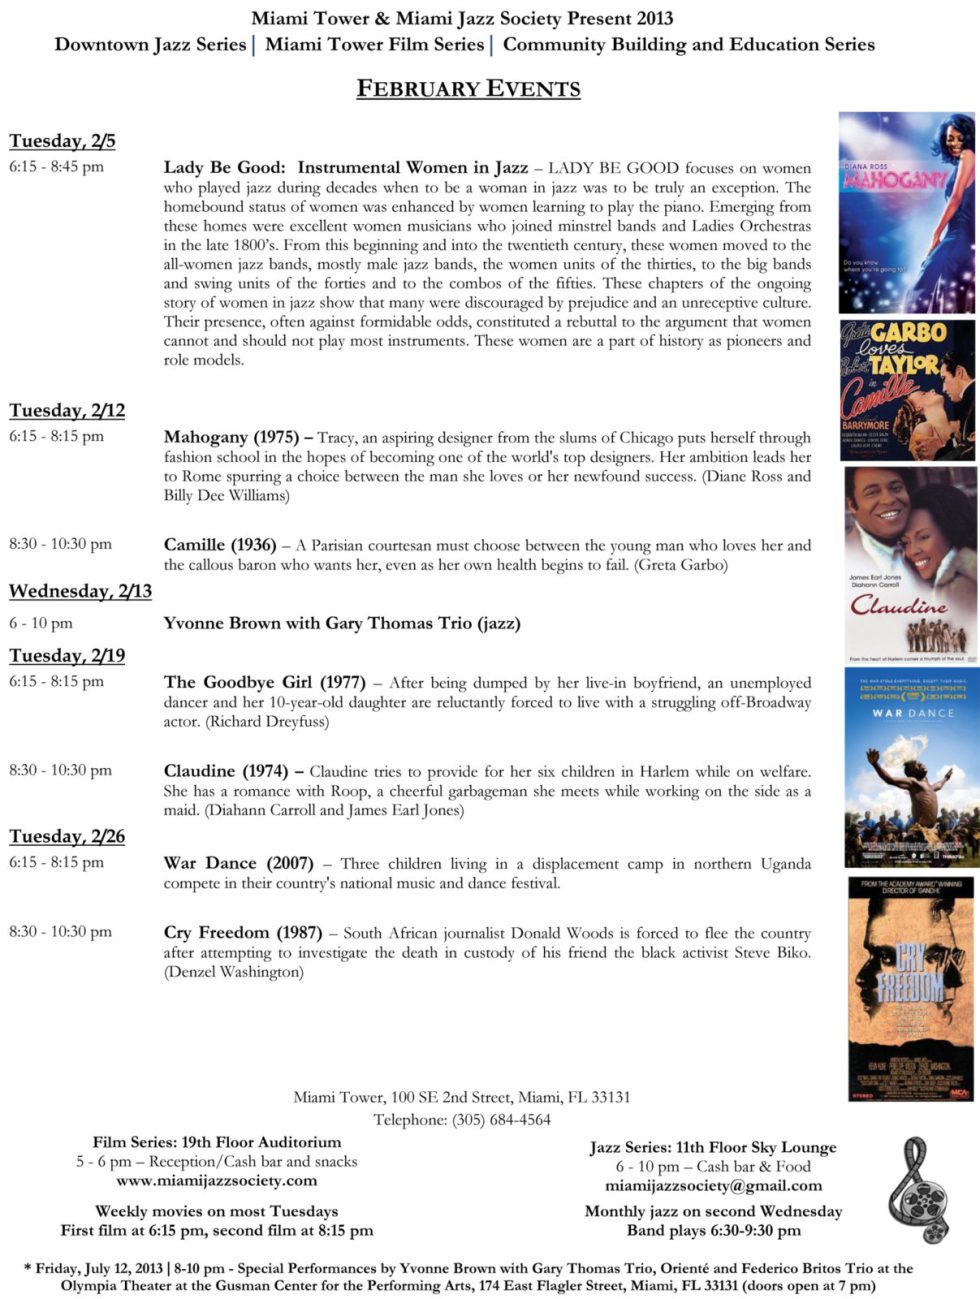 February 2013 schedule & synopses